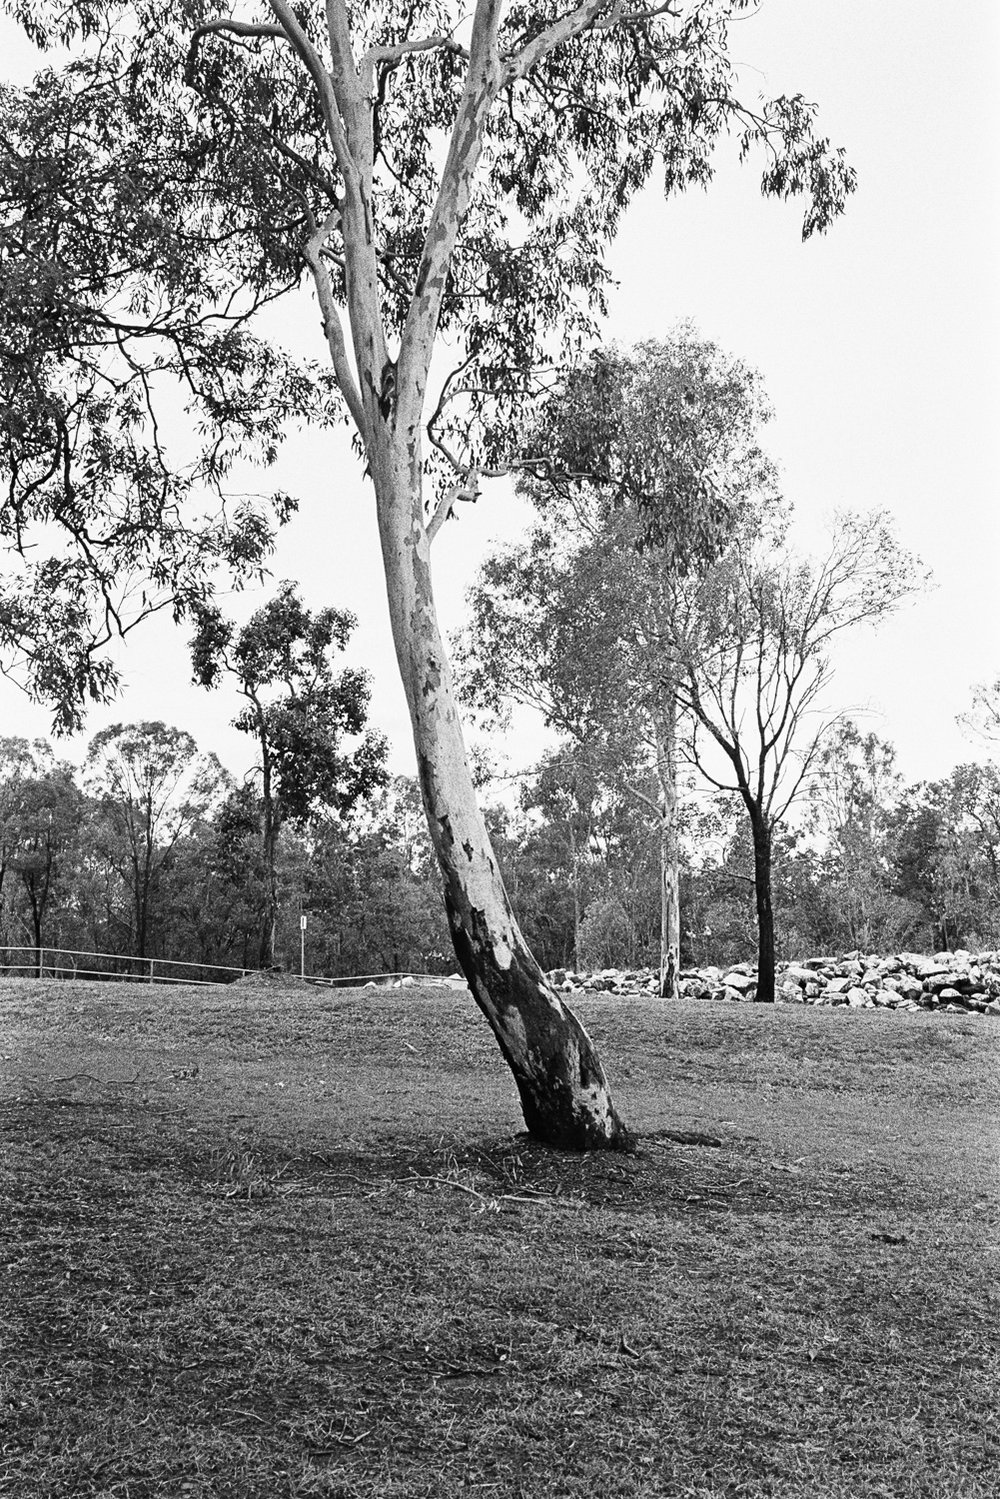 Gum trees are beautiful on film.